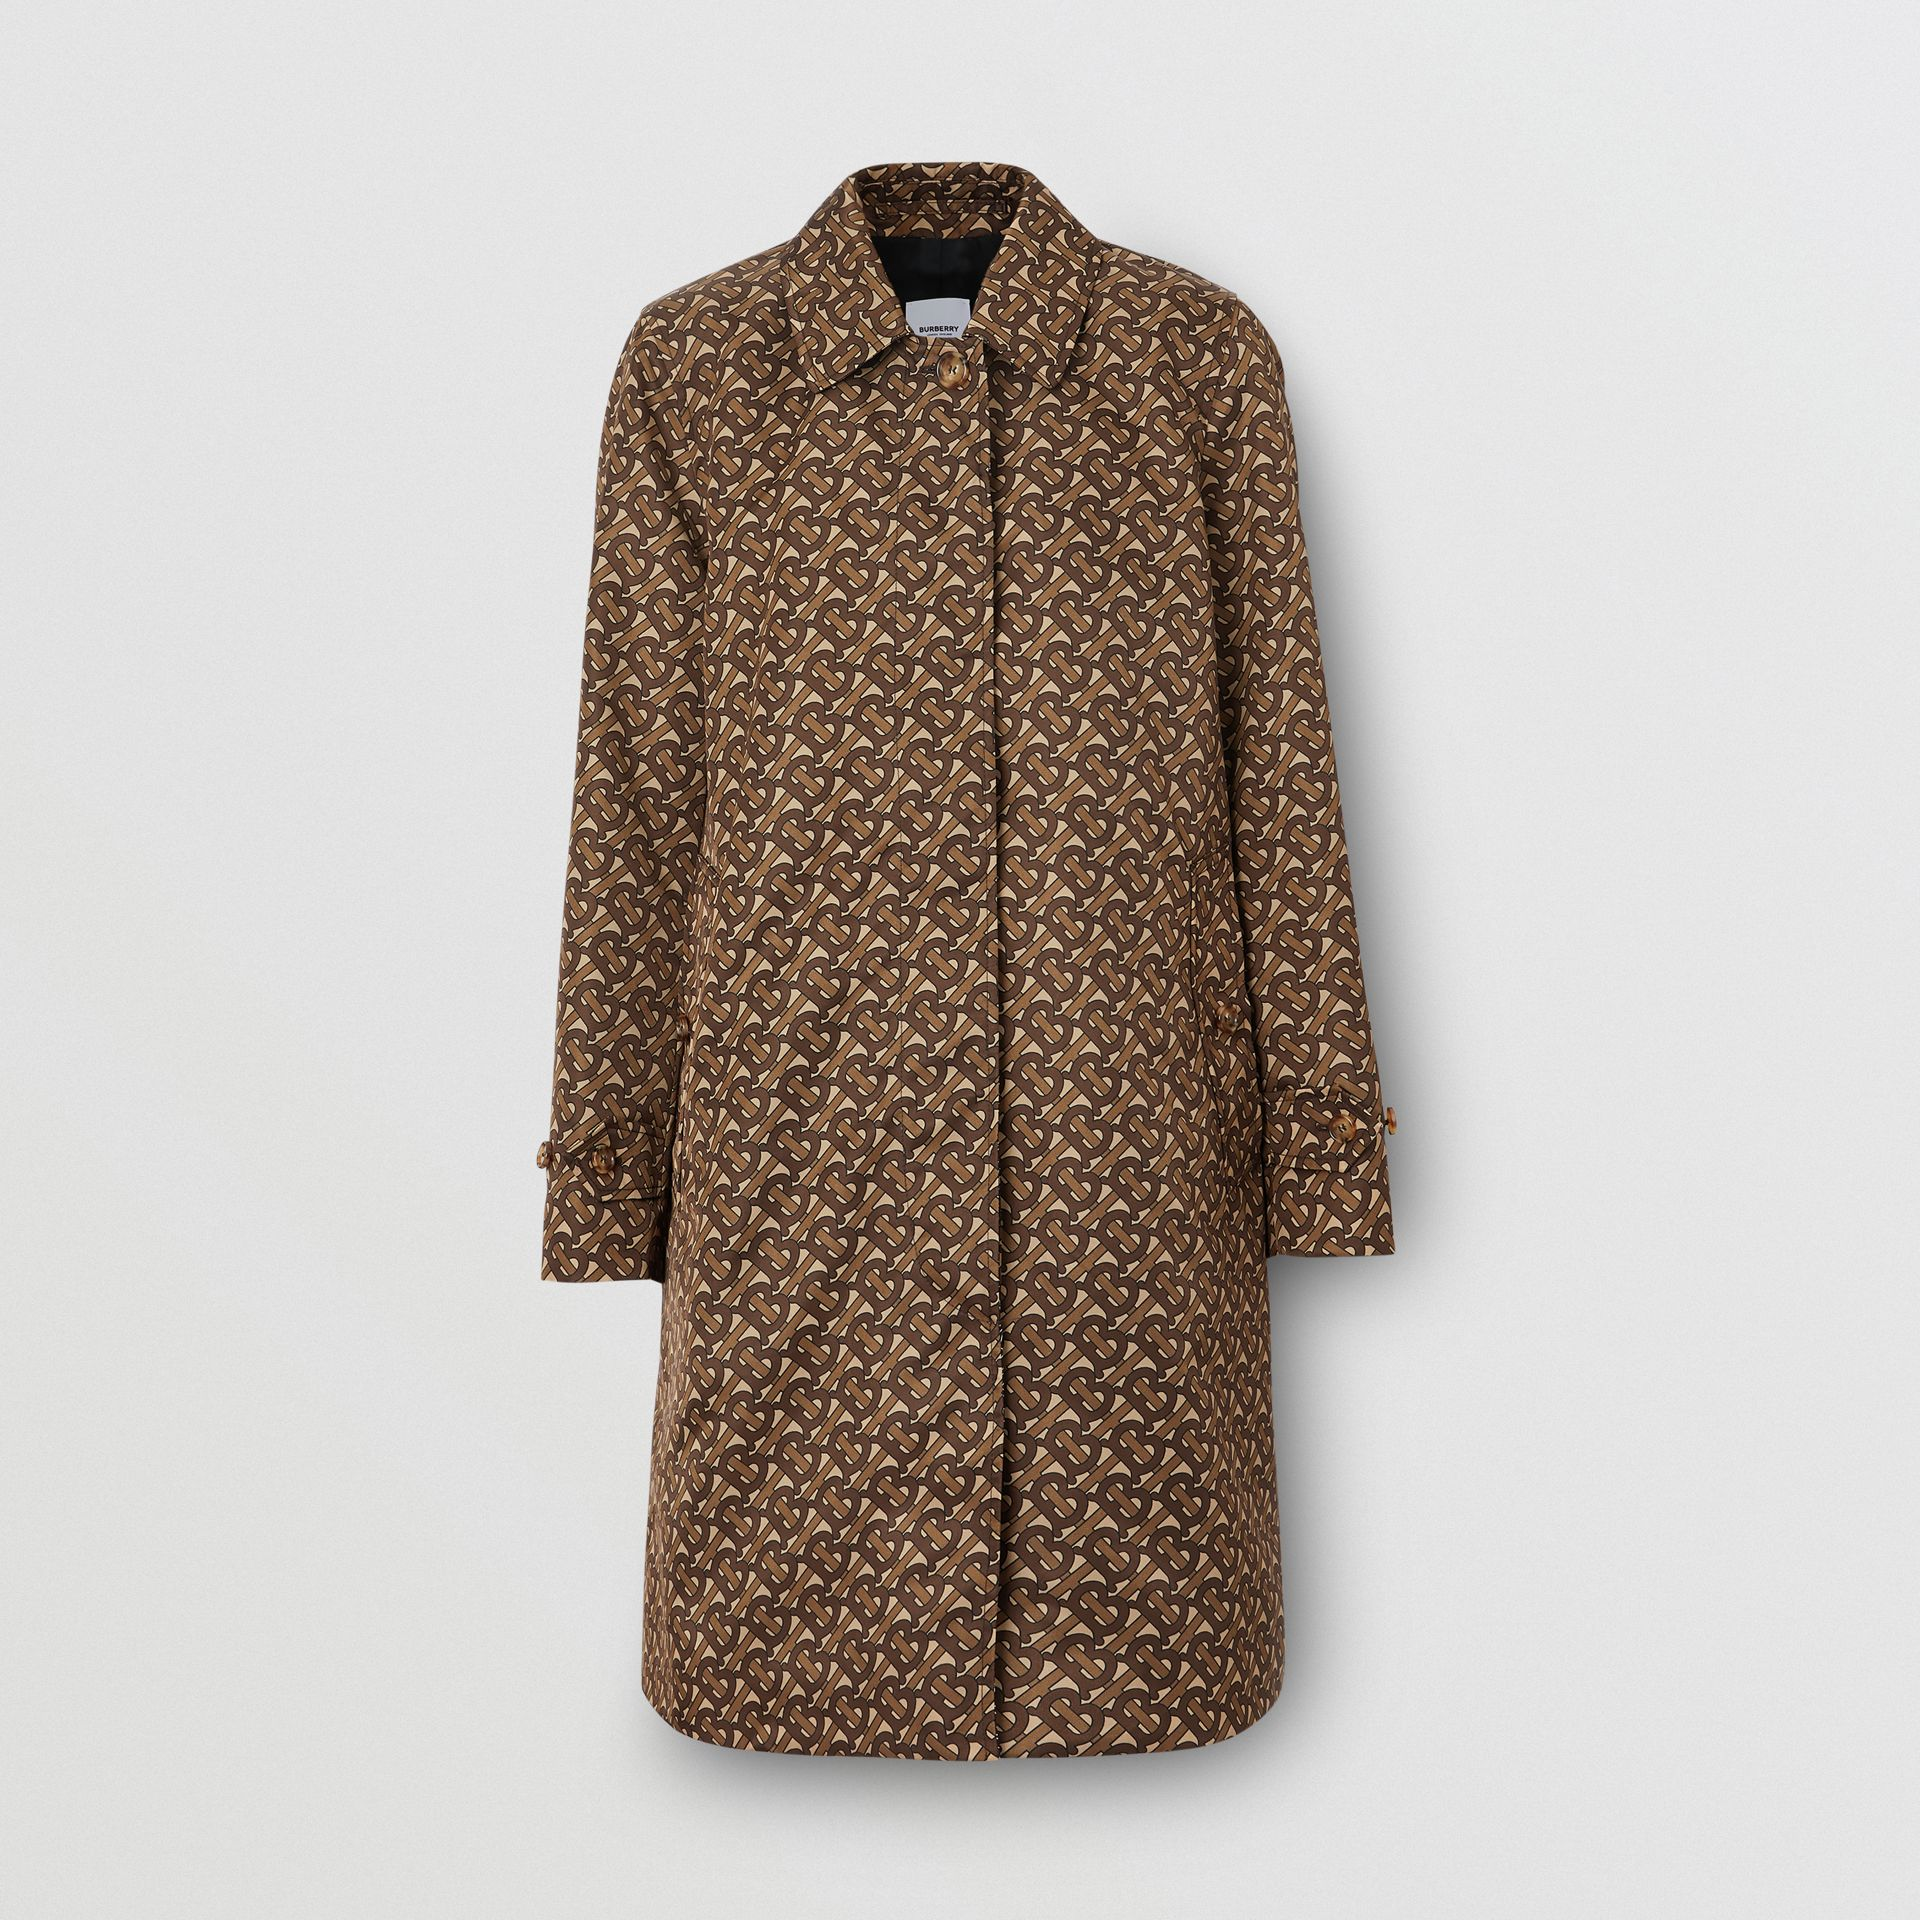 Monogram Stripe Print Nylon Car Coat in Bridle Brown - Women | Burberry United States - gallery image 3